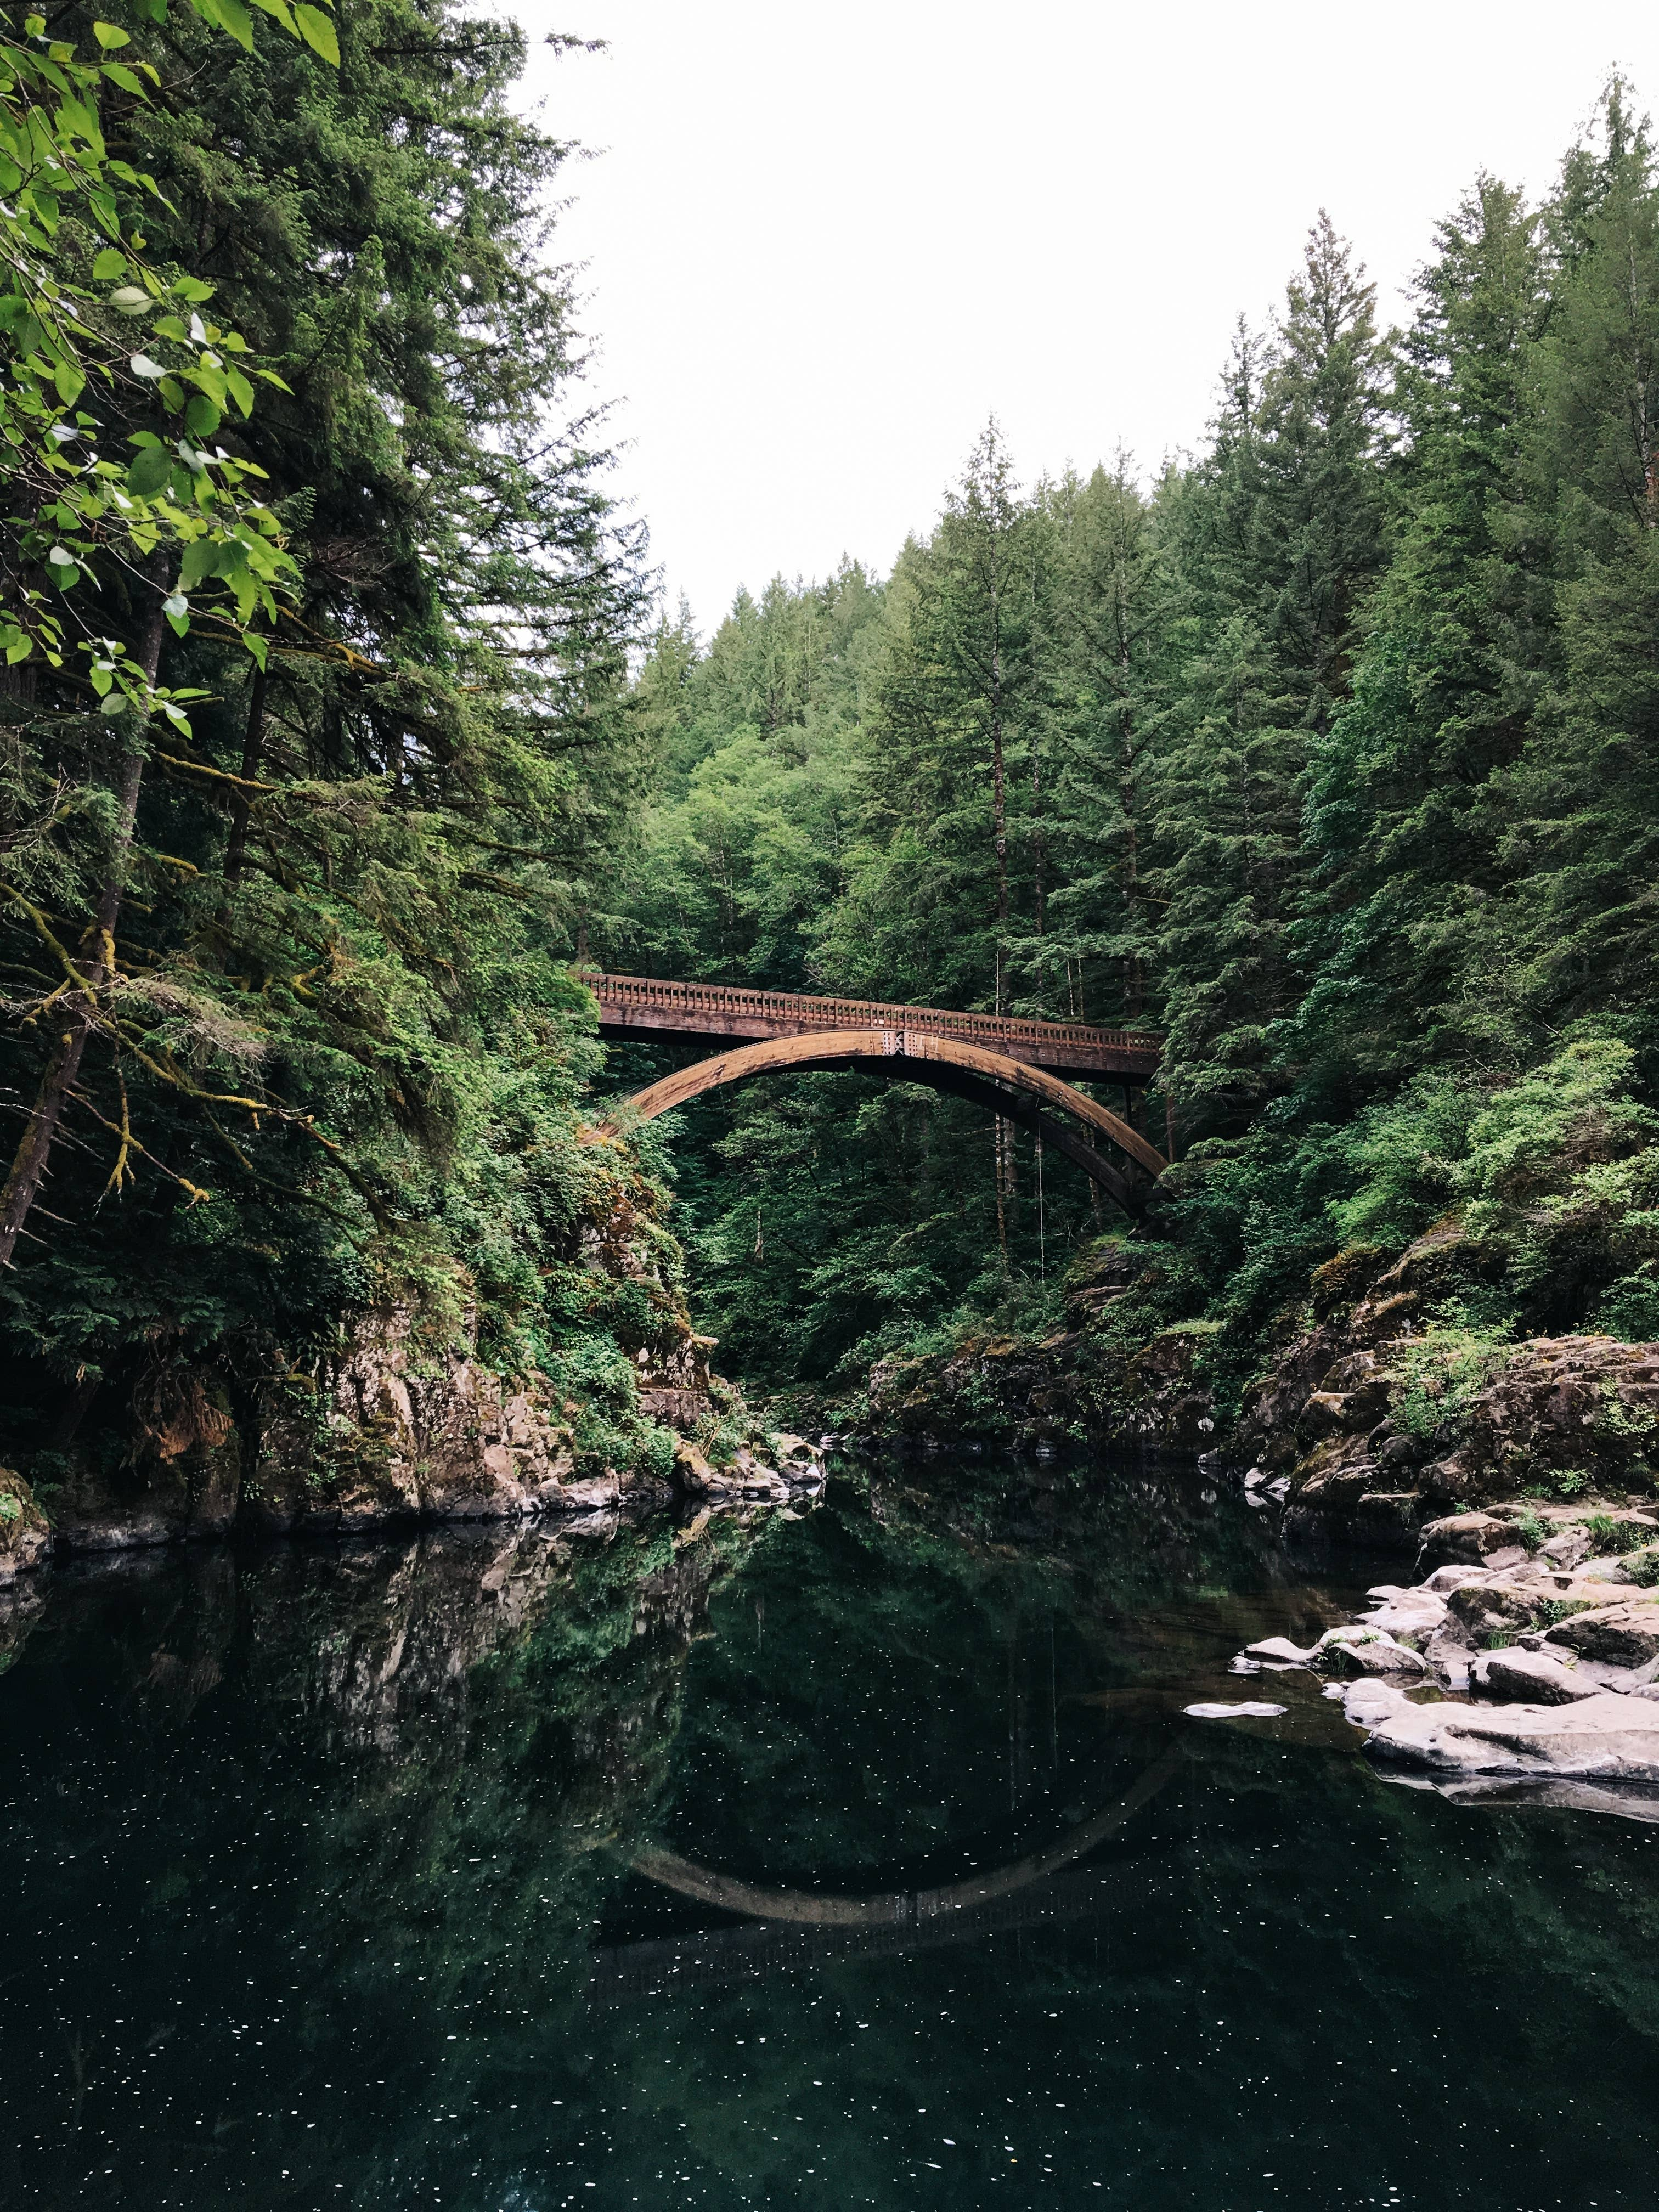 bridge reflected in water surrounded by pine trees